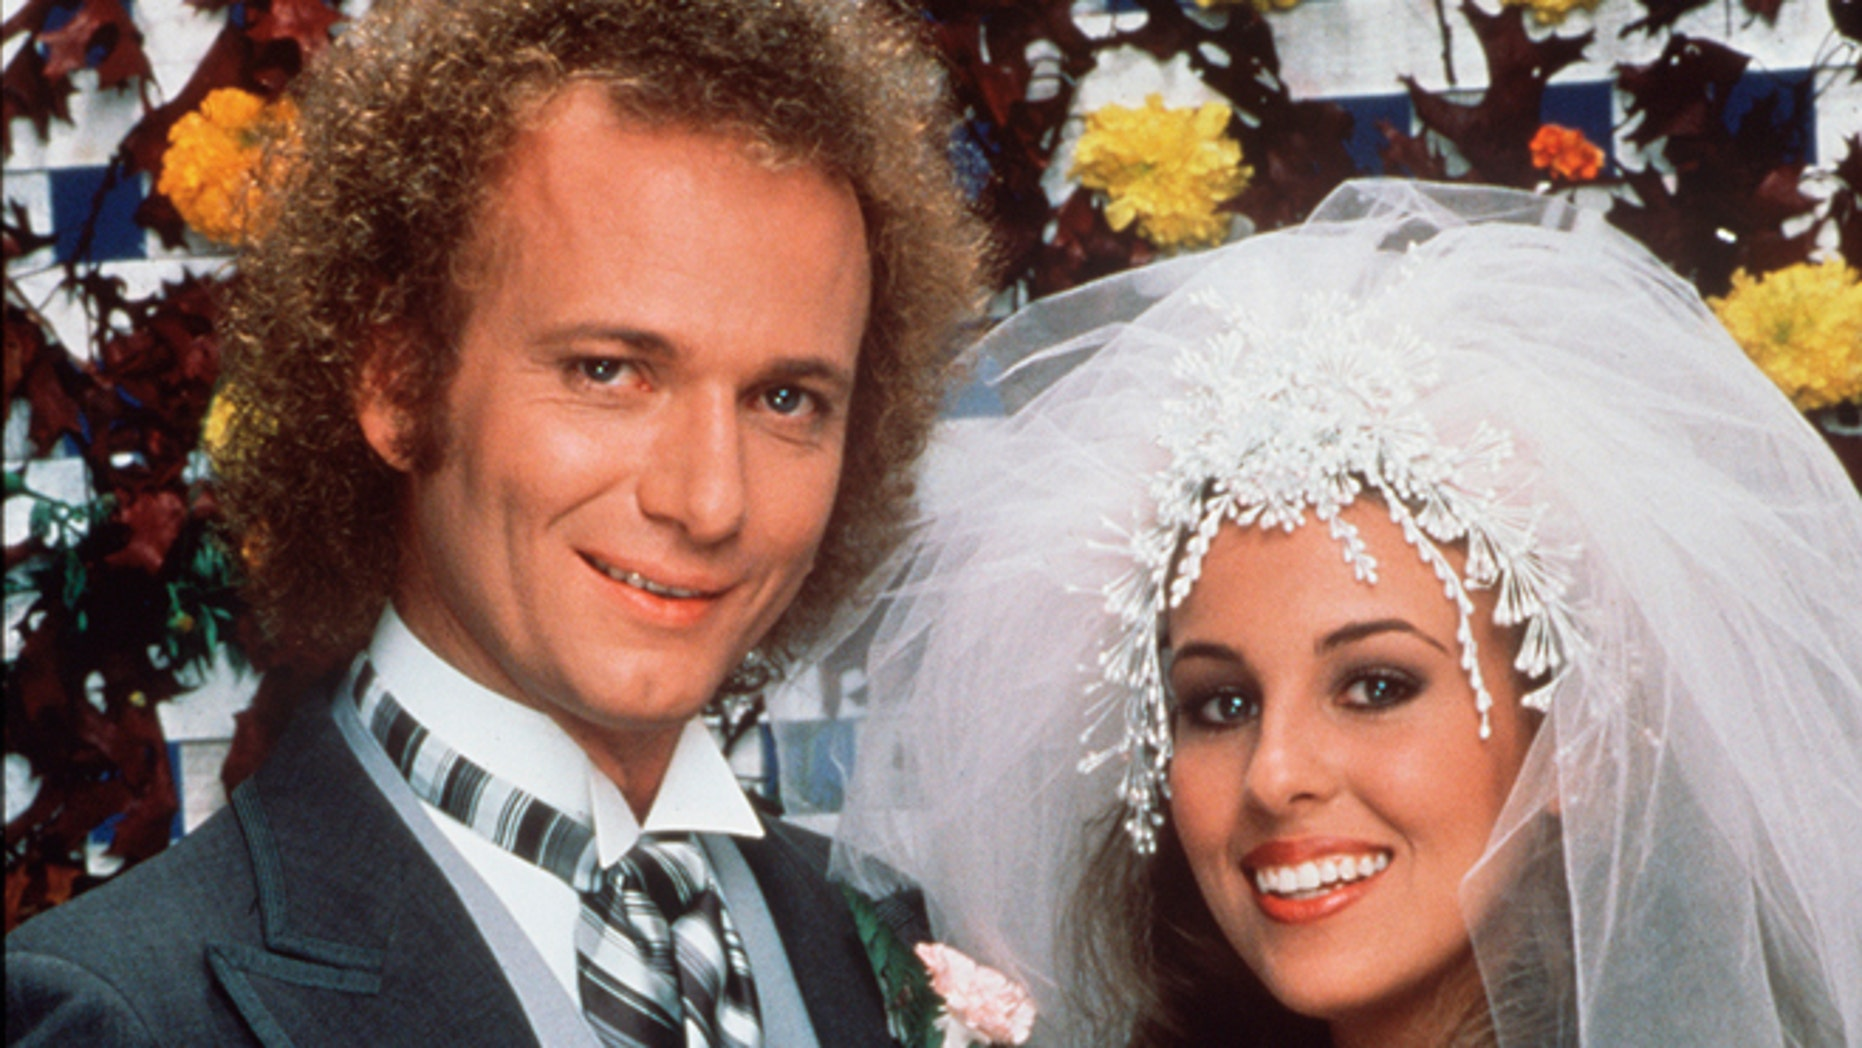 """Nov. 16, 1981. Anthony Geary portrays Luke Spencer, left, and Genie Francis portrays Laura Spencer on """"General Hospital."""""""